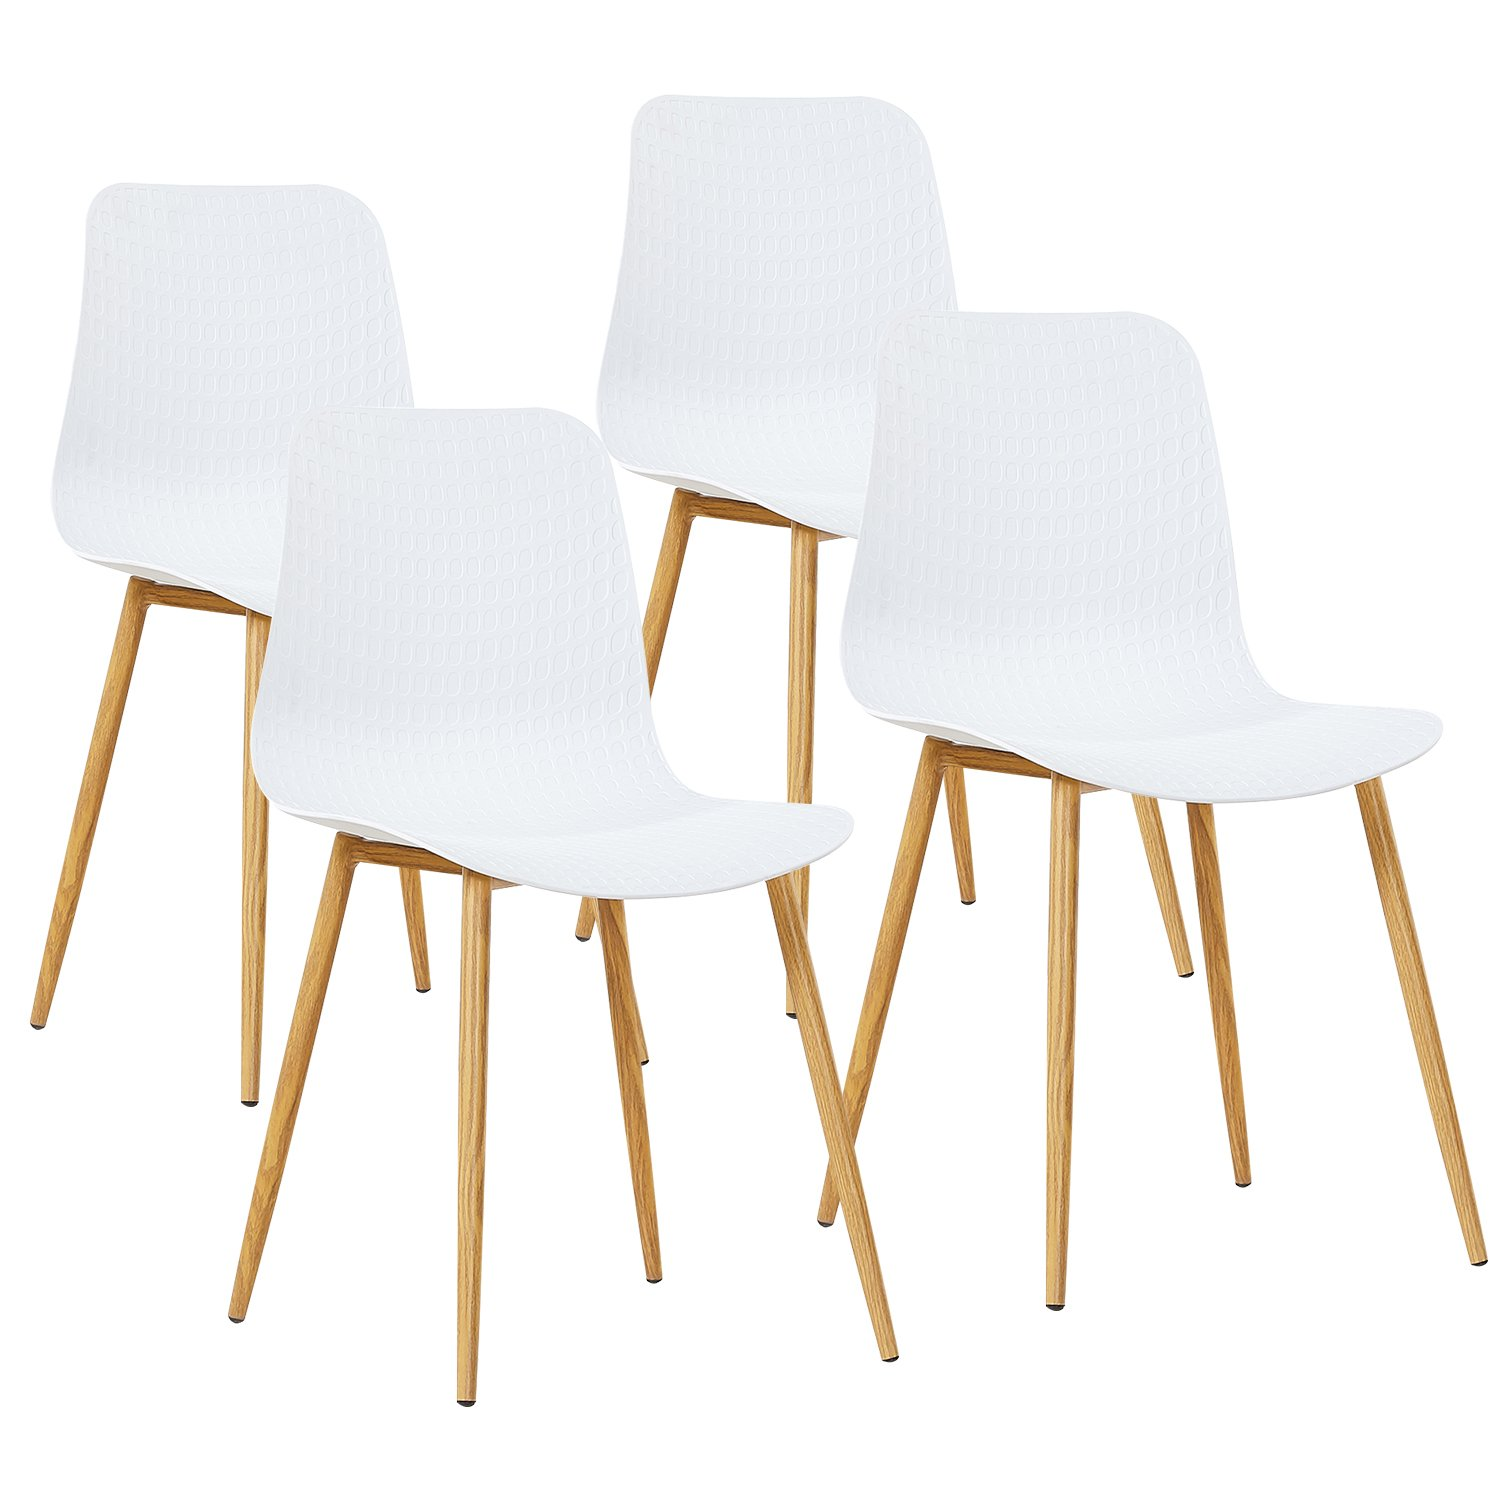 GreenForest Dining Chairs Mid Century Modern Style Dining Side Chairs Plastic Back and Seat Metal Wood Legs for Kitchen Dining Room Chairs, Set of 4 White